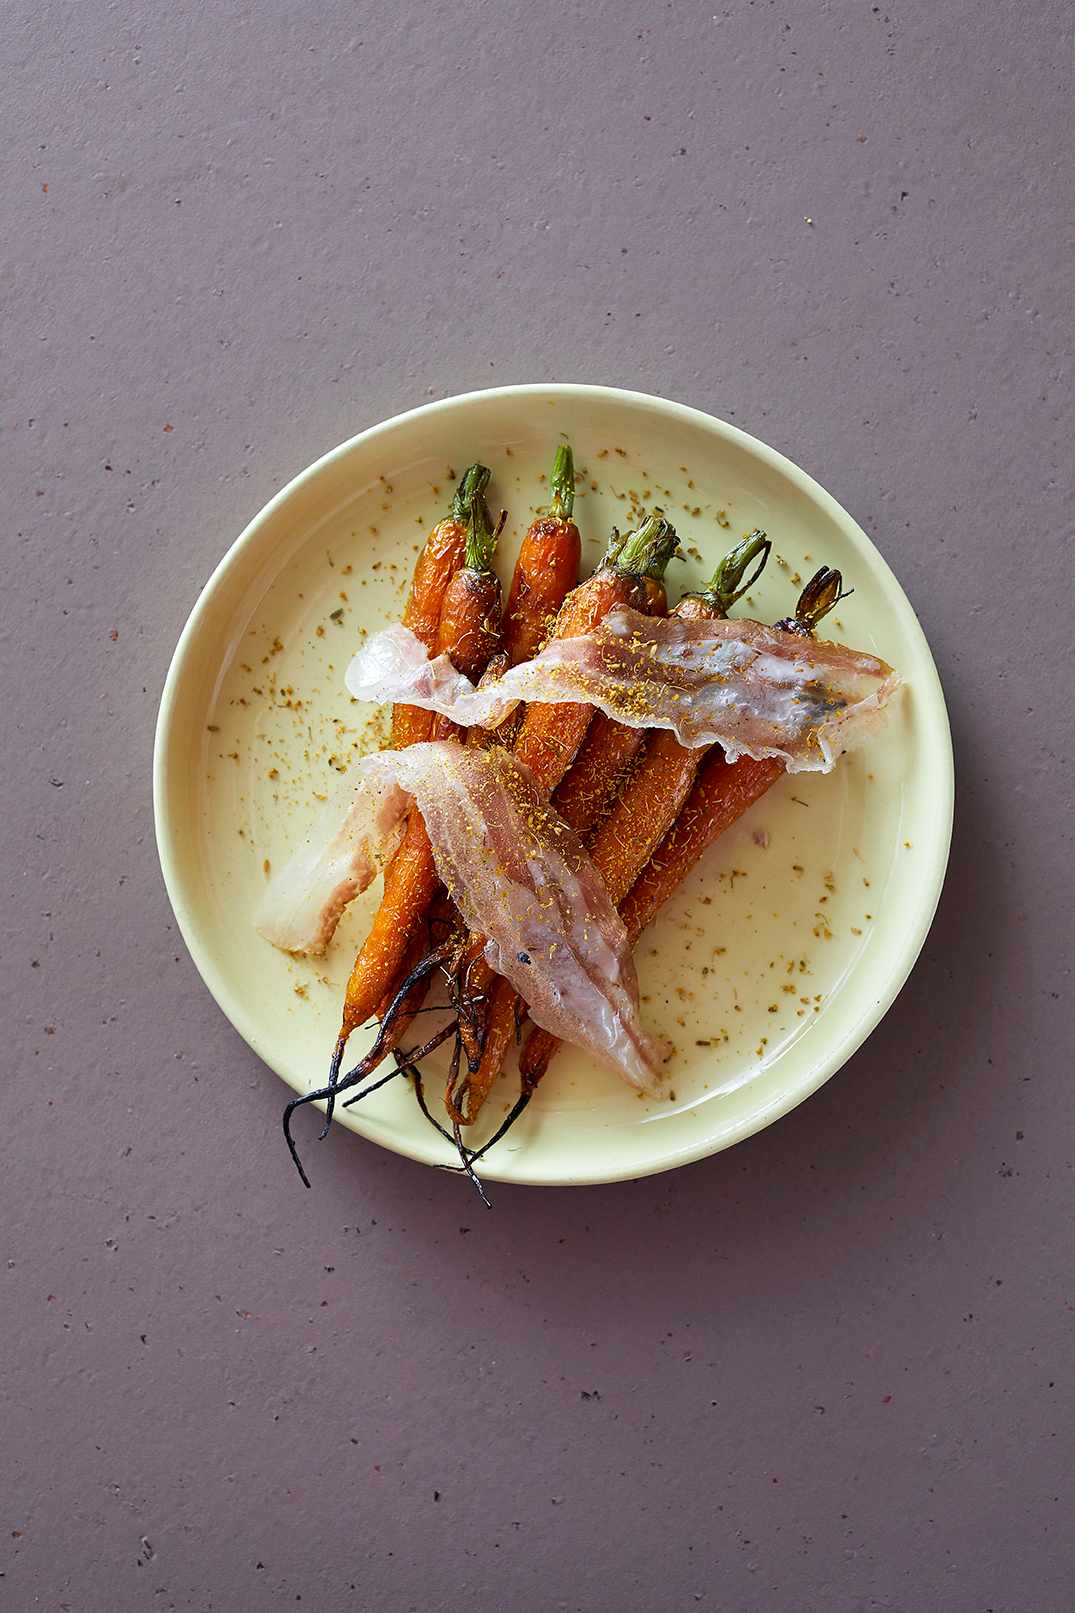 Roasted carrots with lardo and fennel pollen